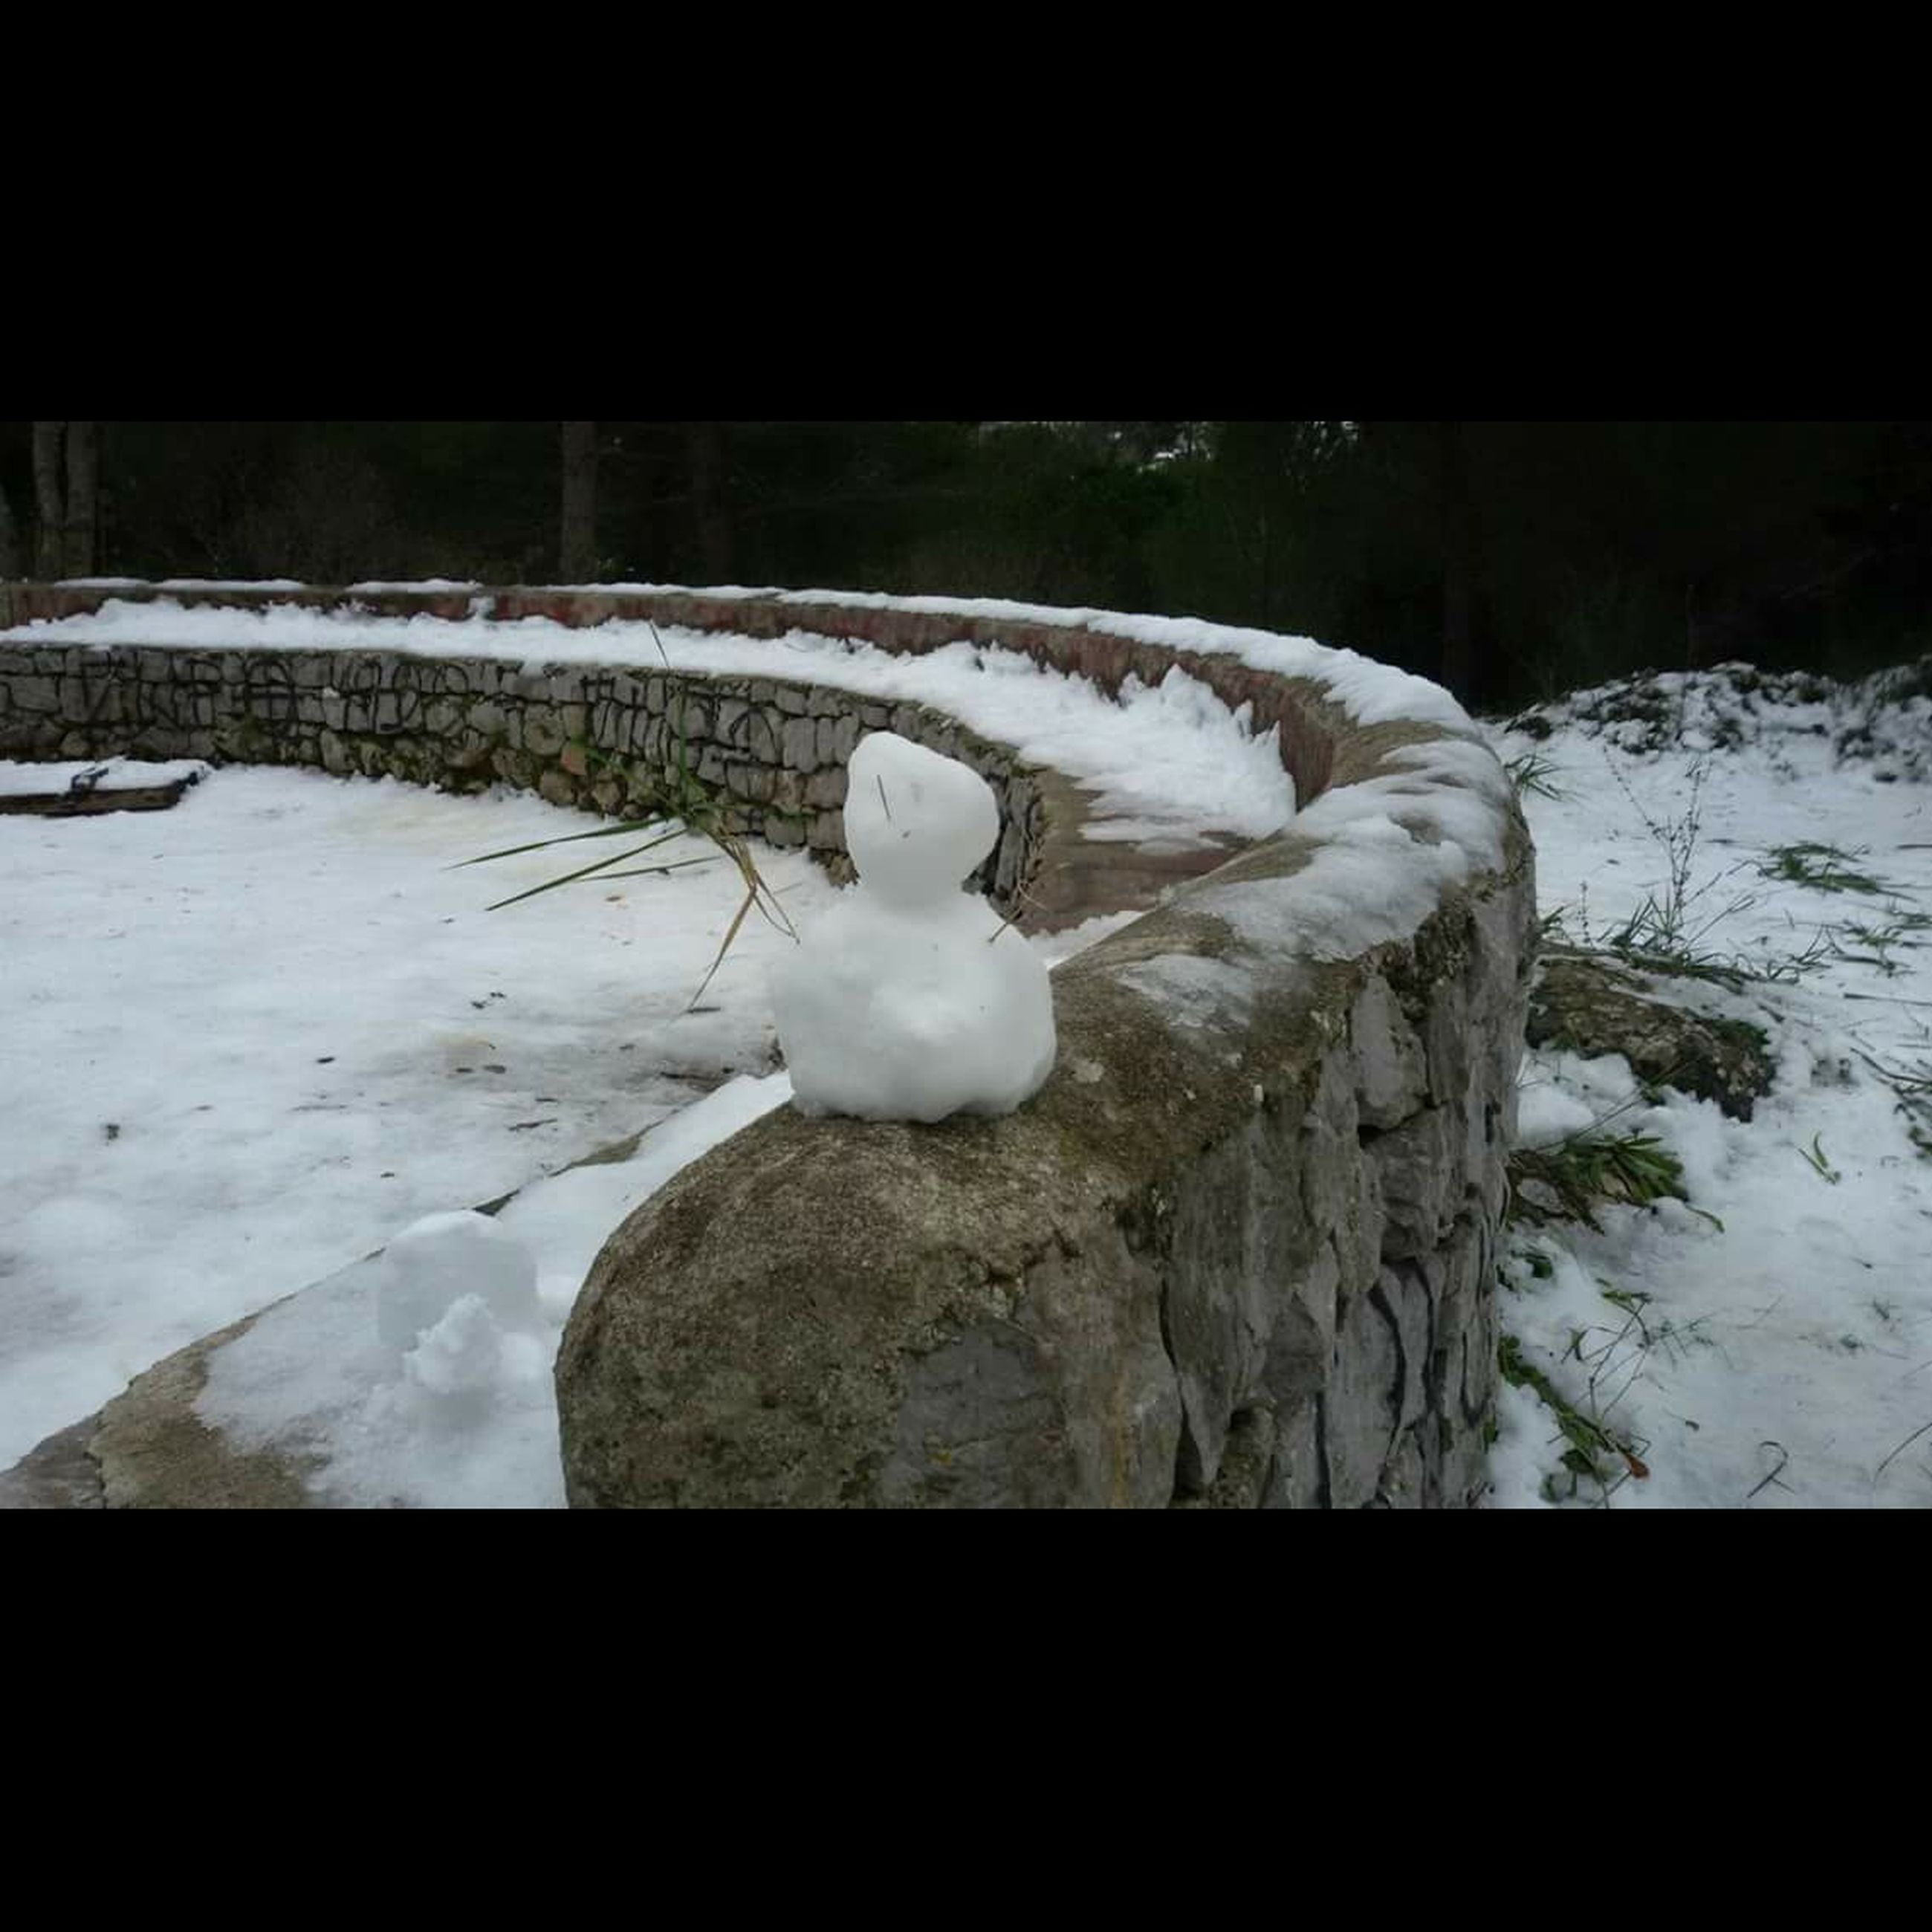 winter, snow, cold temperature, nature, no people, outdoors, beauty in nature, day, close-up